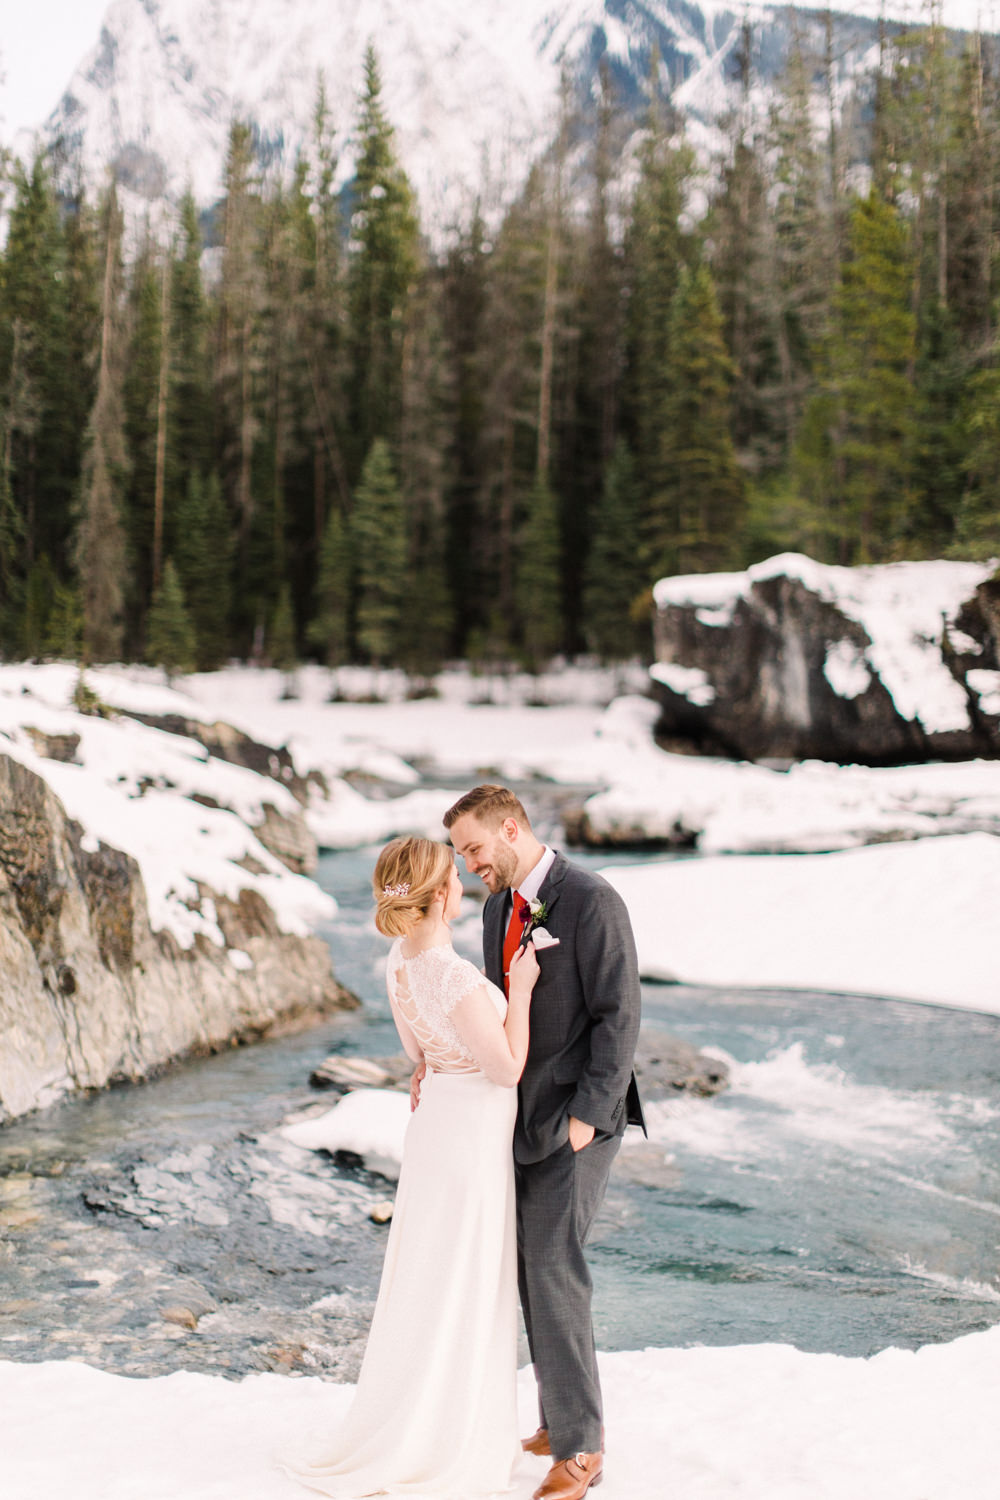 Matt-and-Jennas-Emerald-Lake-winter-wedding-26.jpg